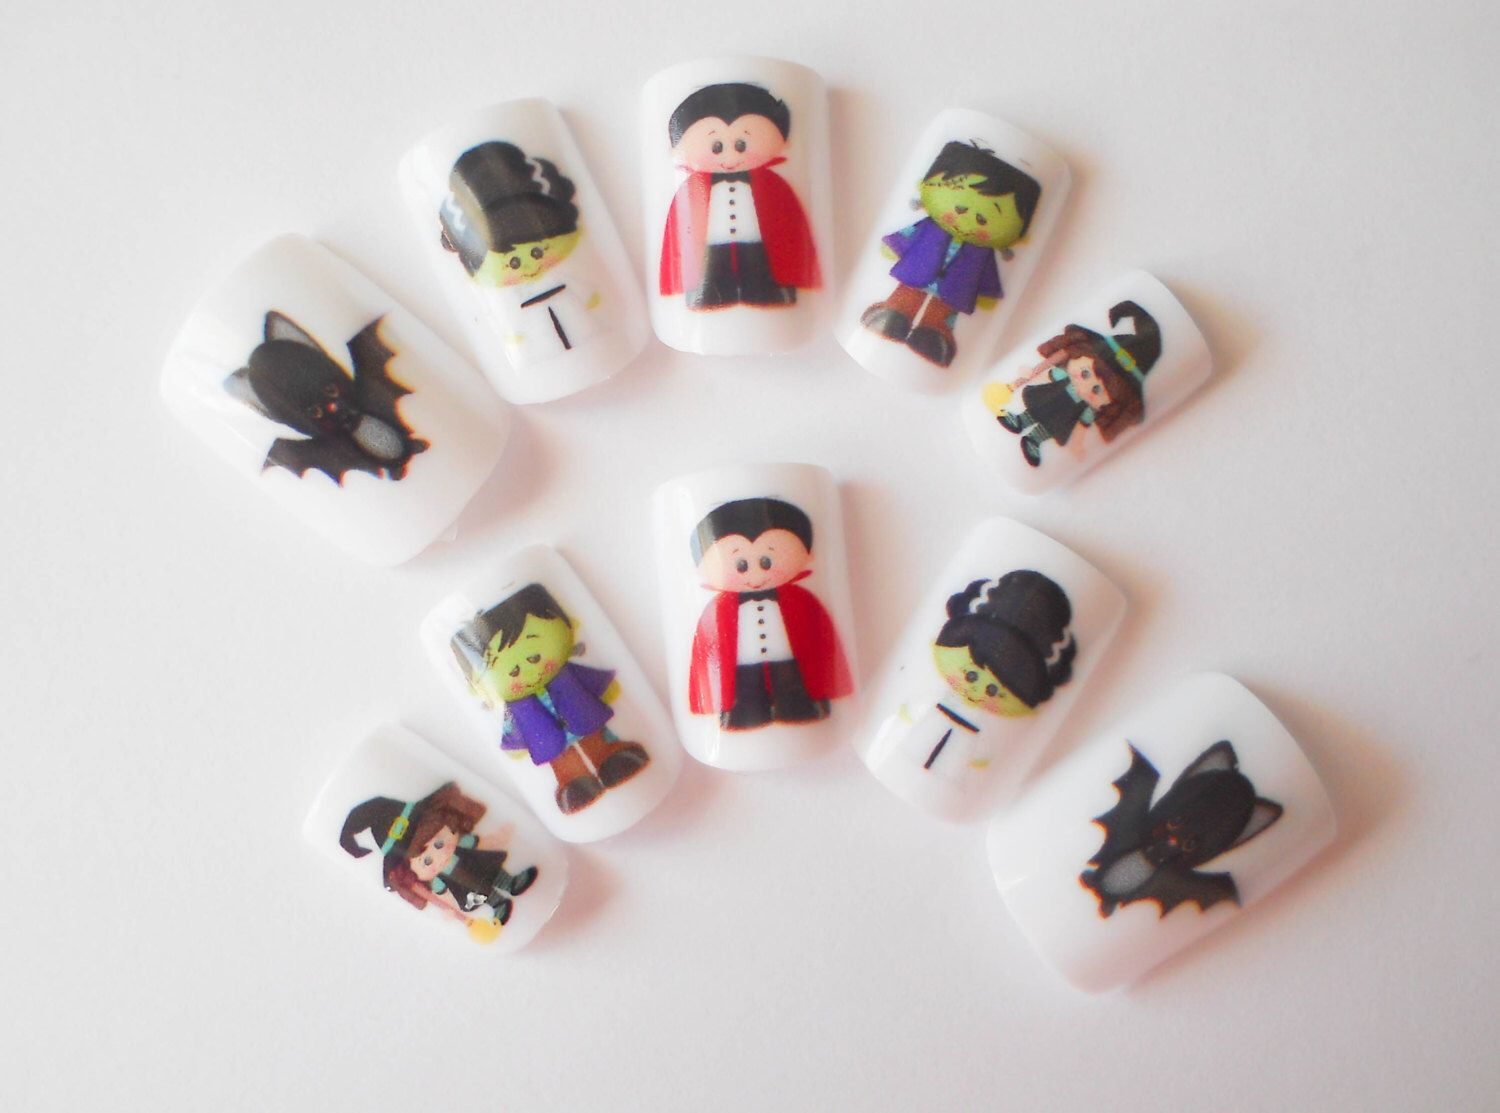 Beautiful Fake Nails For Halloween Sketch - Nail Art Ideas ...